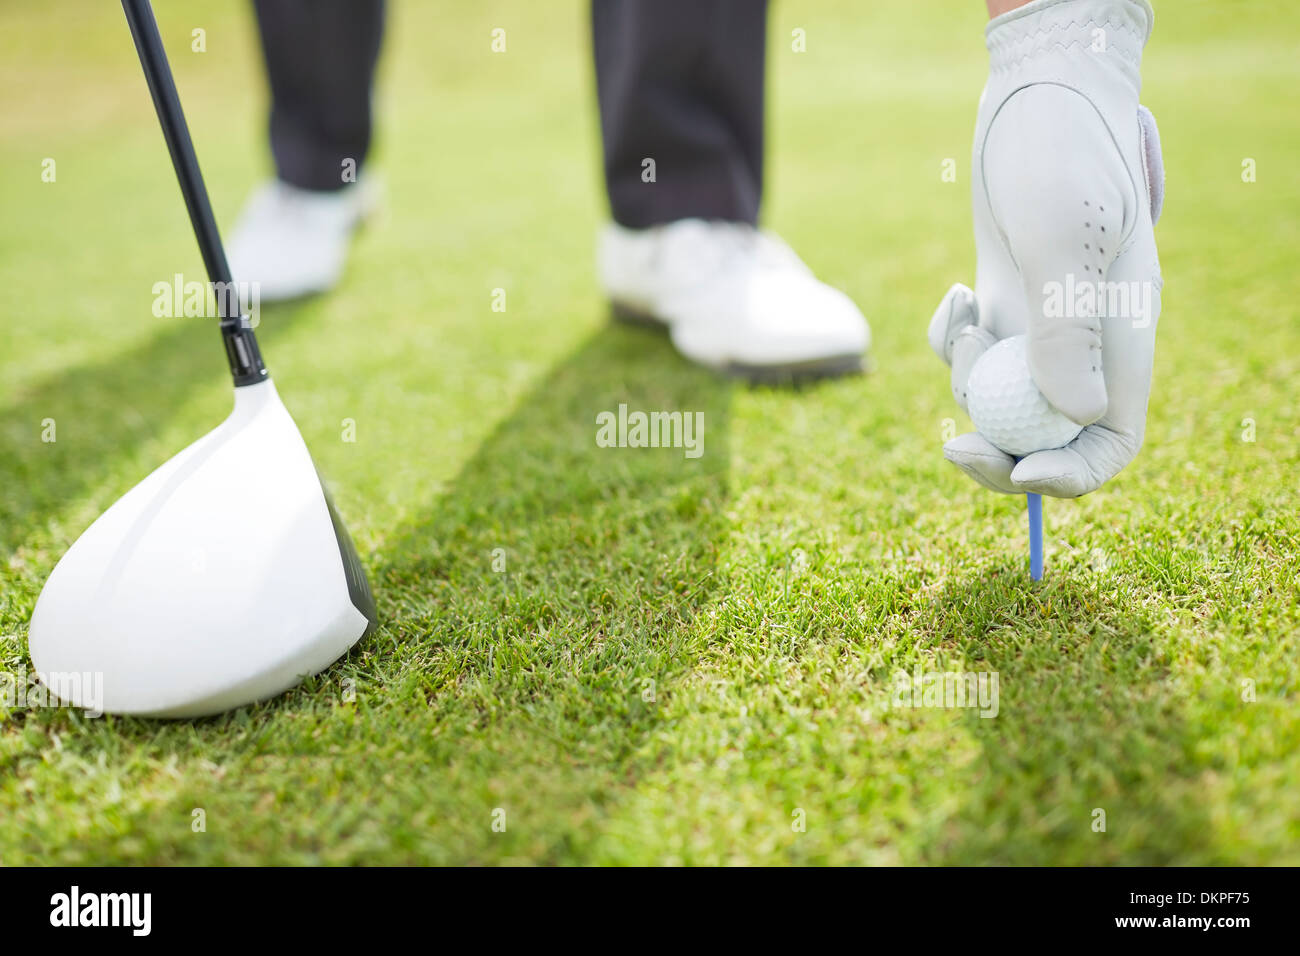 Man teeing golf ball on course - Stock Image